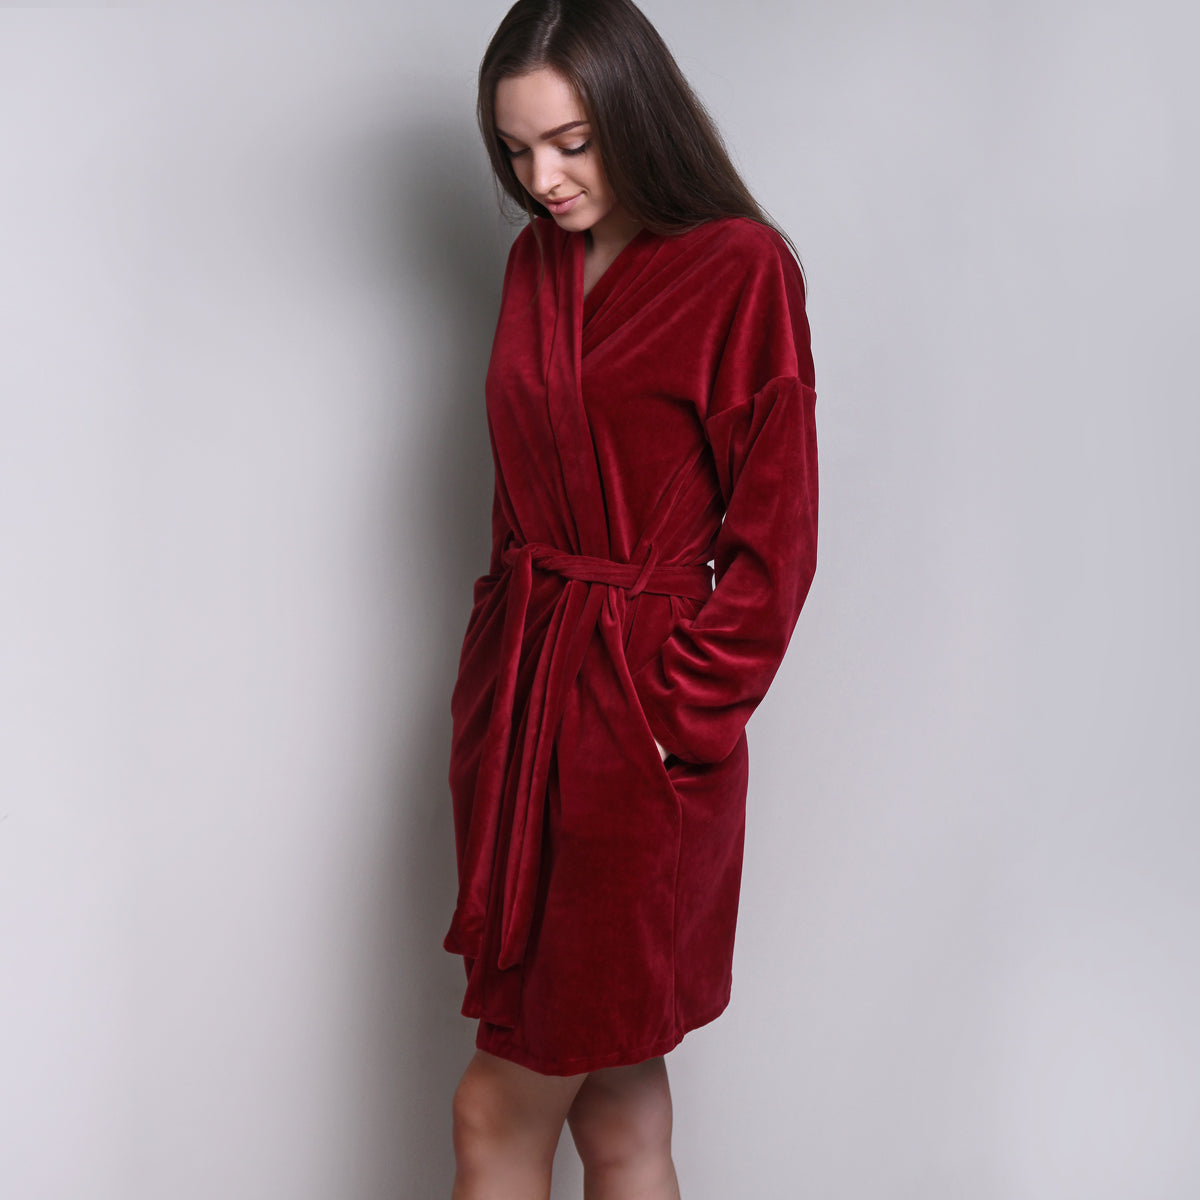 Sofa Killer burgundy velours robe